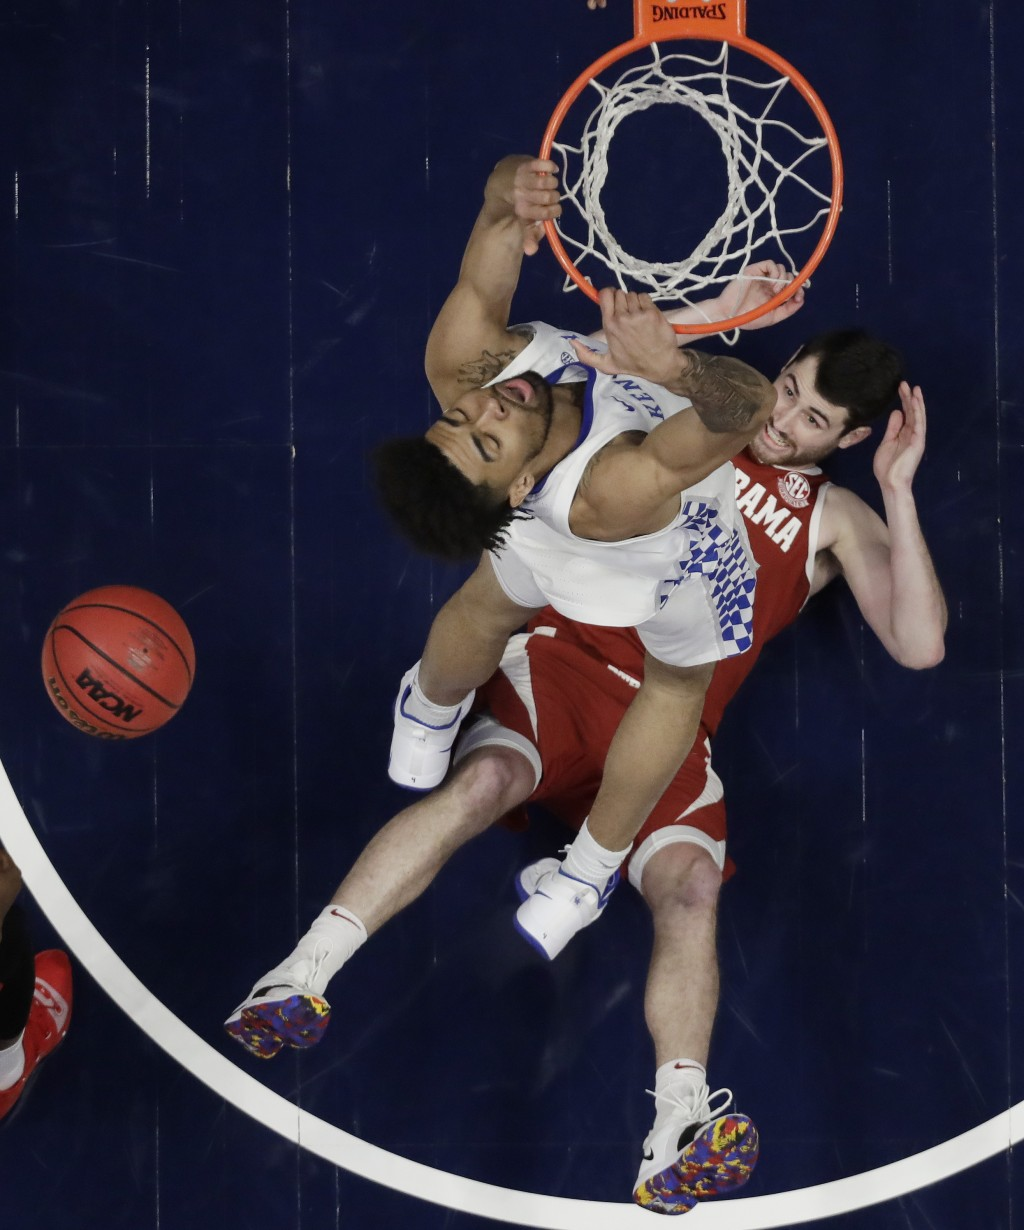 Alabama guard Riley Norris watches from the floor as Kentucky forward Nick Richards dunks the ball above him in the first half of an NCAA college bask